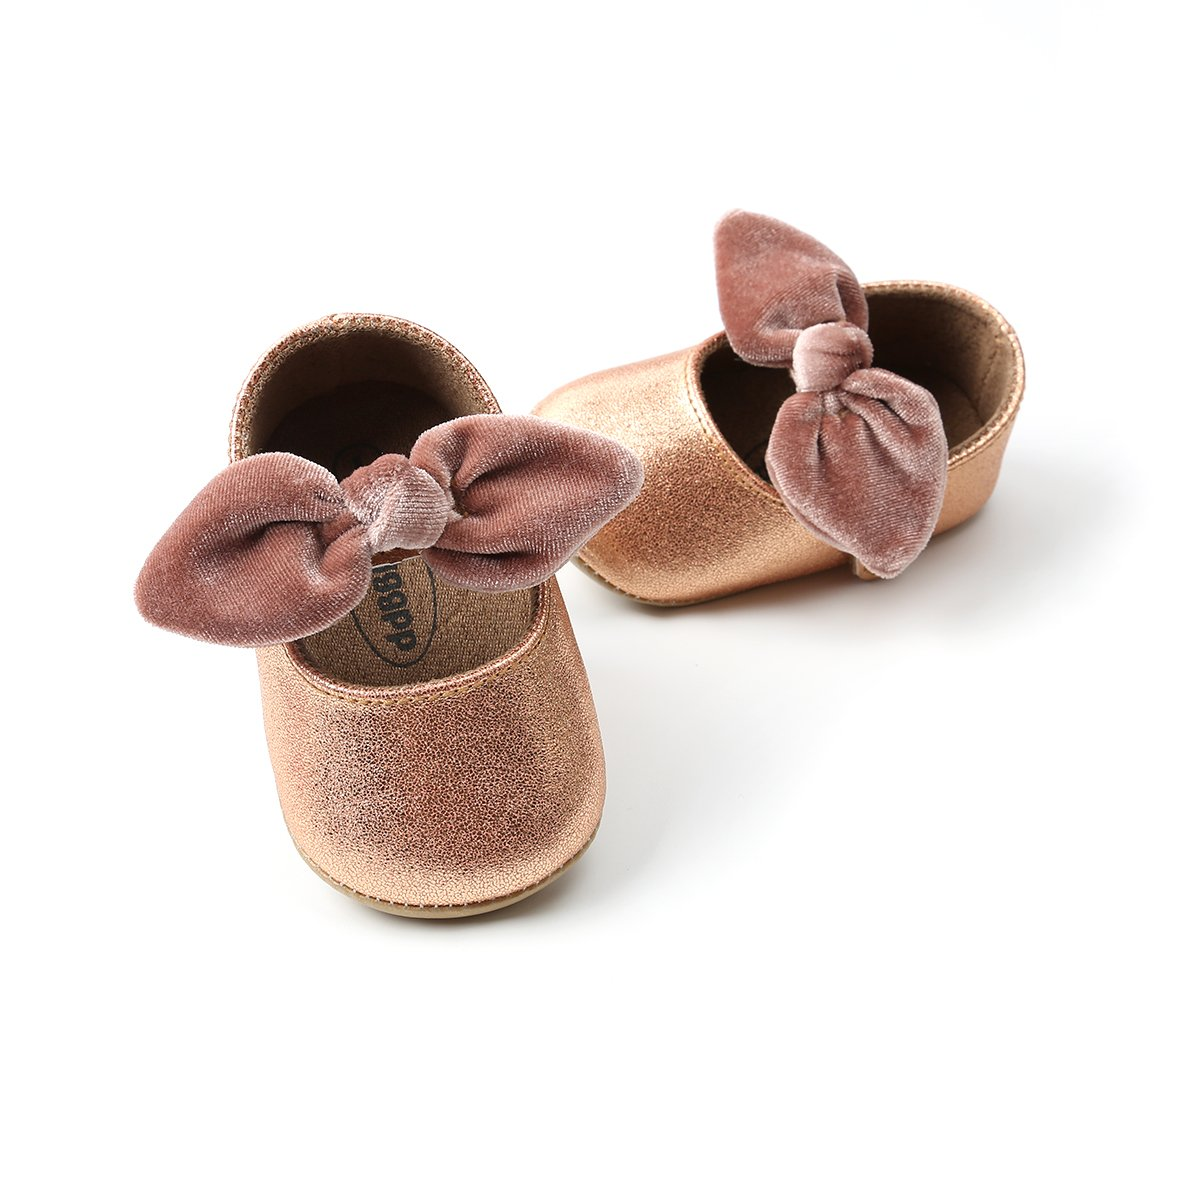 Save Beautiful Sabe Infant Baby Girls Boys Bowknot Sandals Colorful Soft Sole Mary Jane Shoes